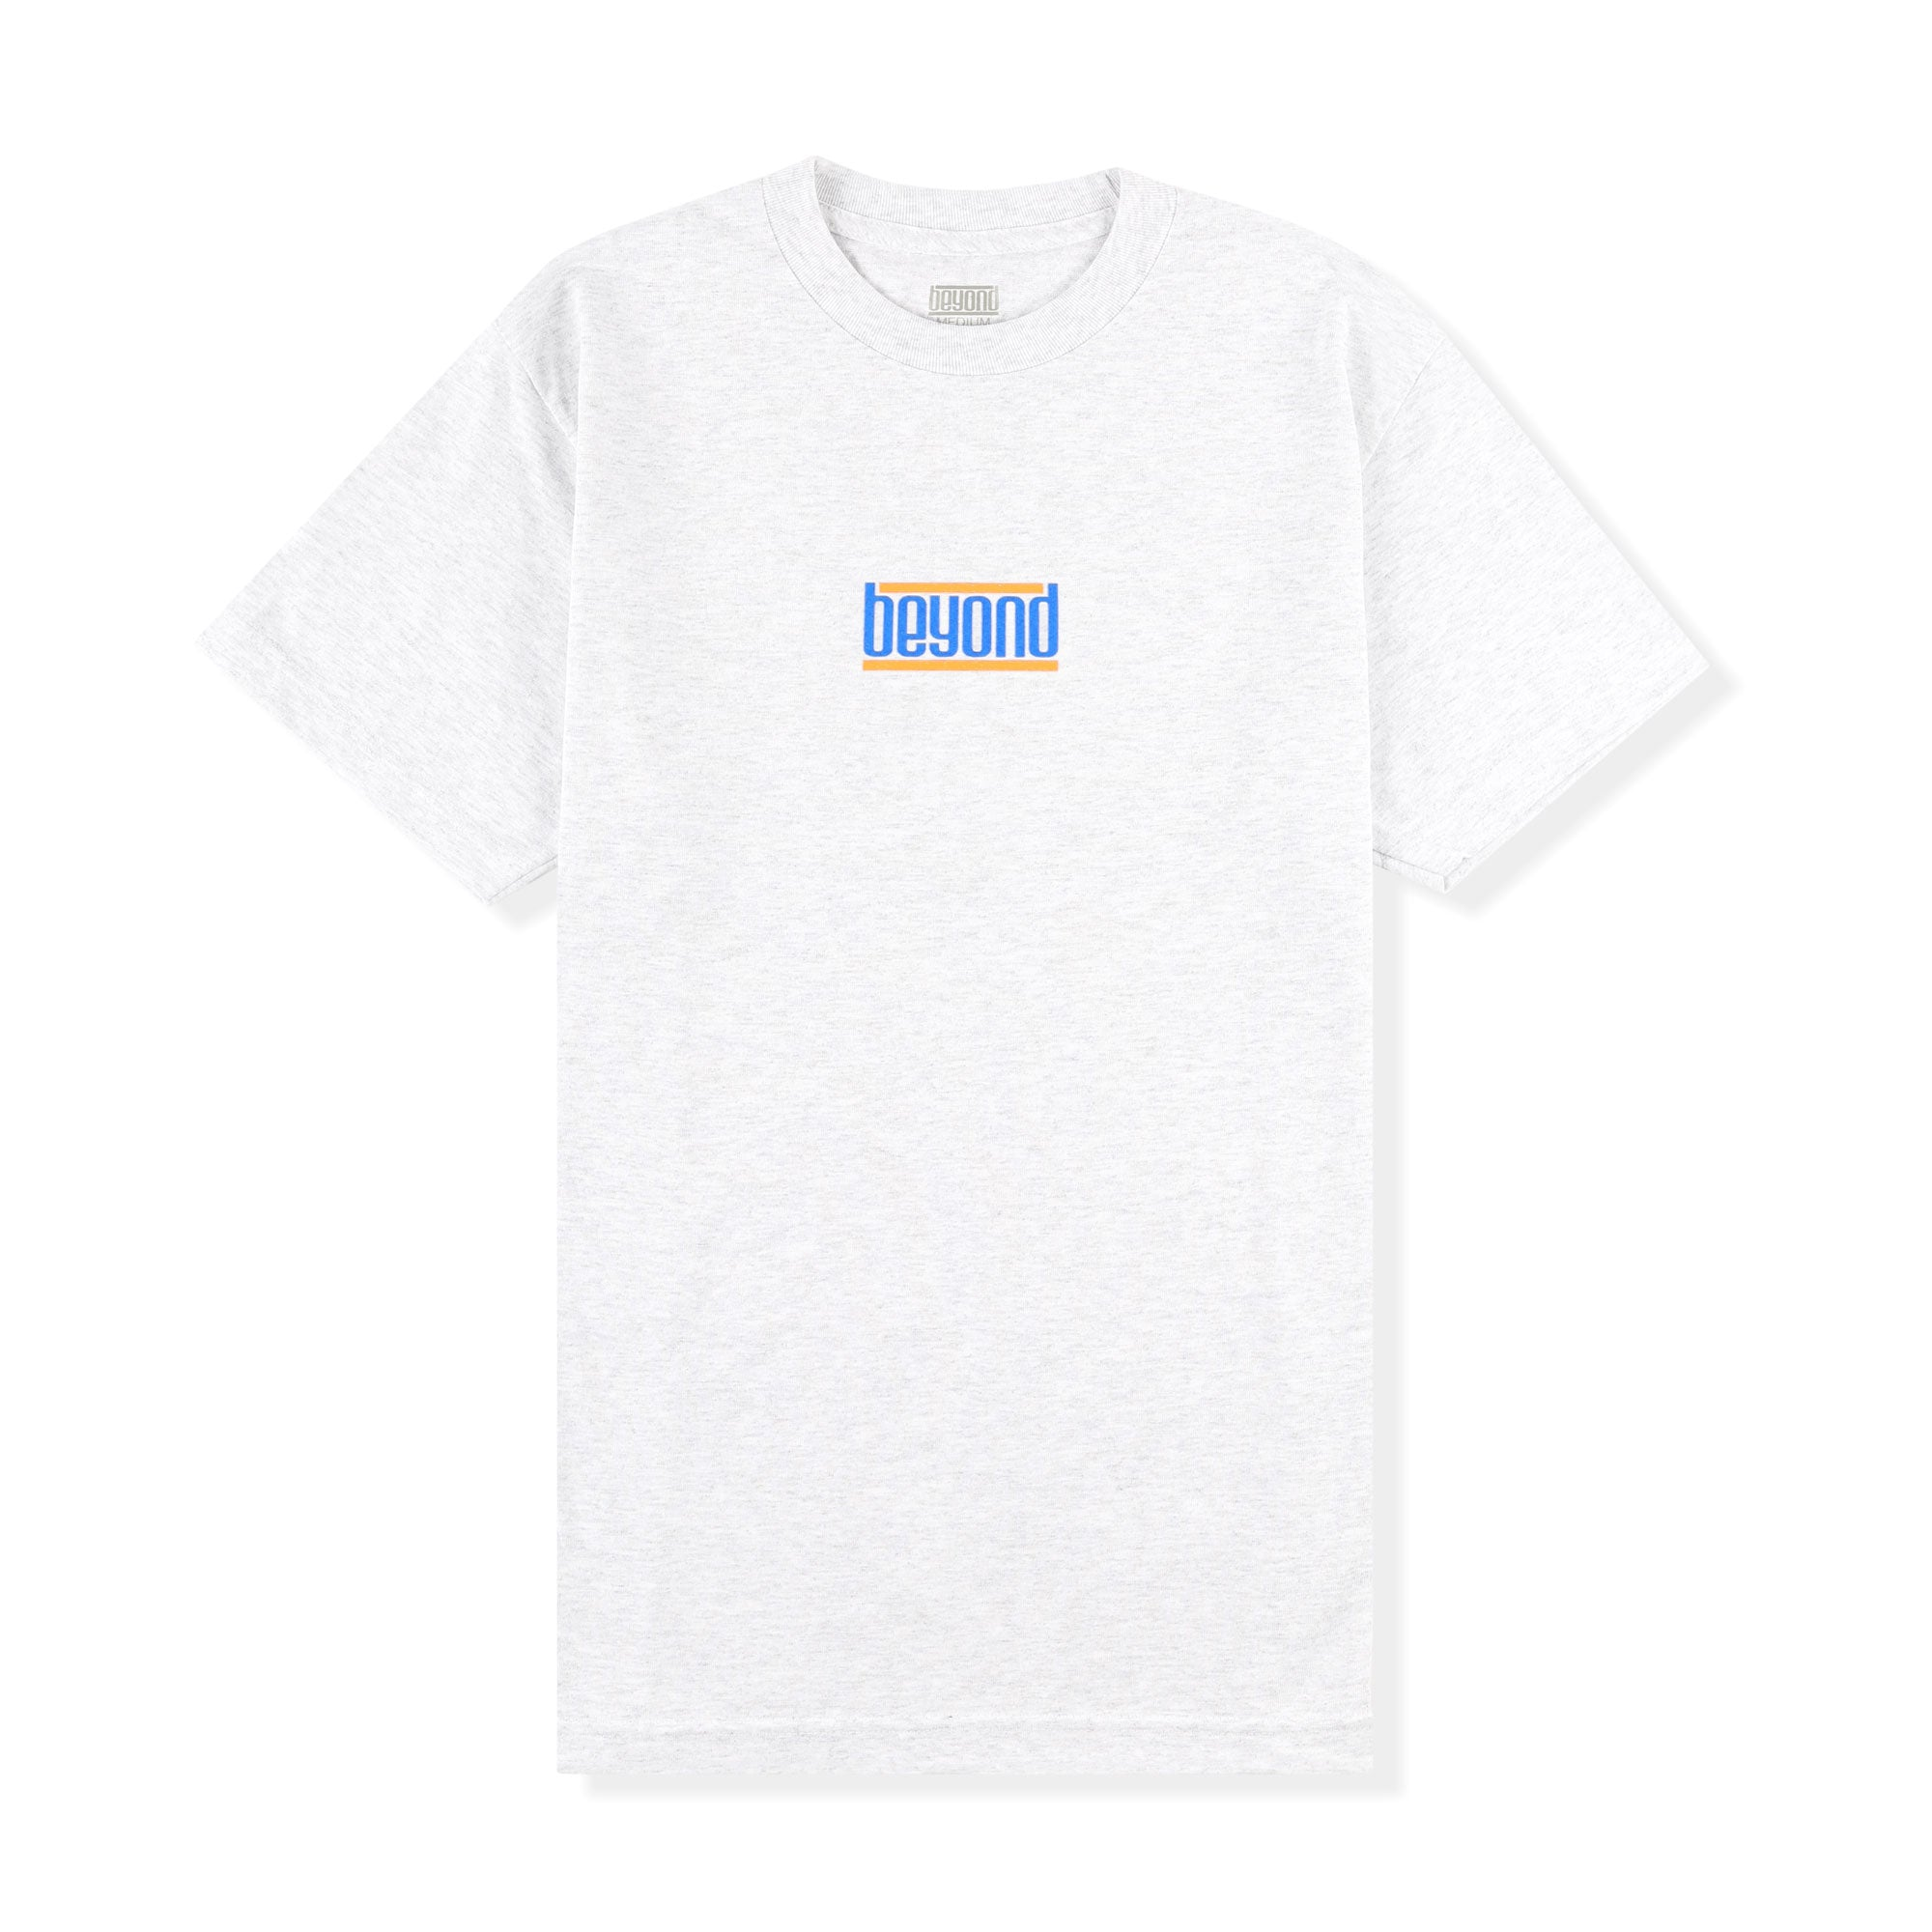 Beyond Variety Logo Tee Product Photo #1